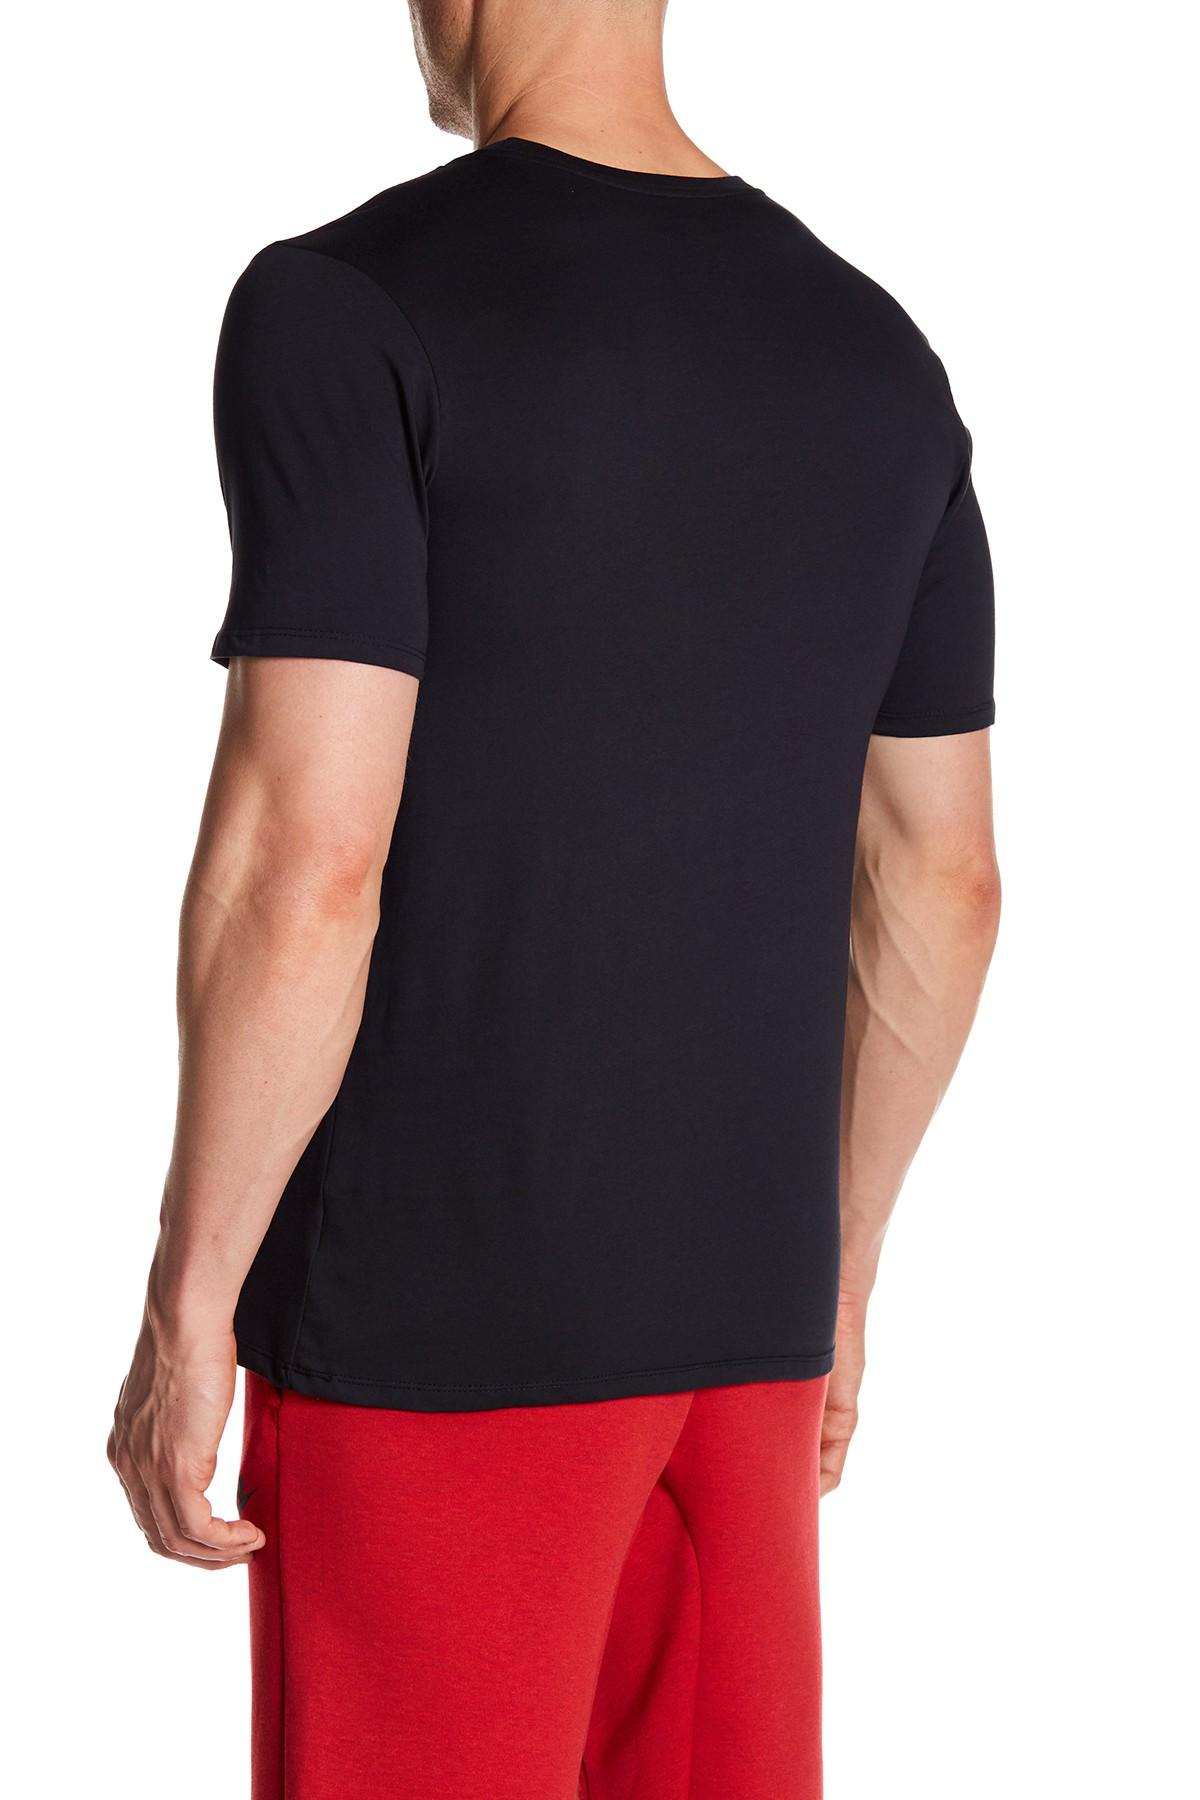 Lyst nike swoosh goal athletic cut tee in black for men for Mens athletic cut shirts